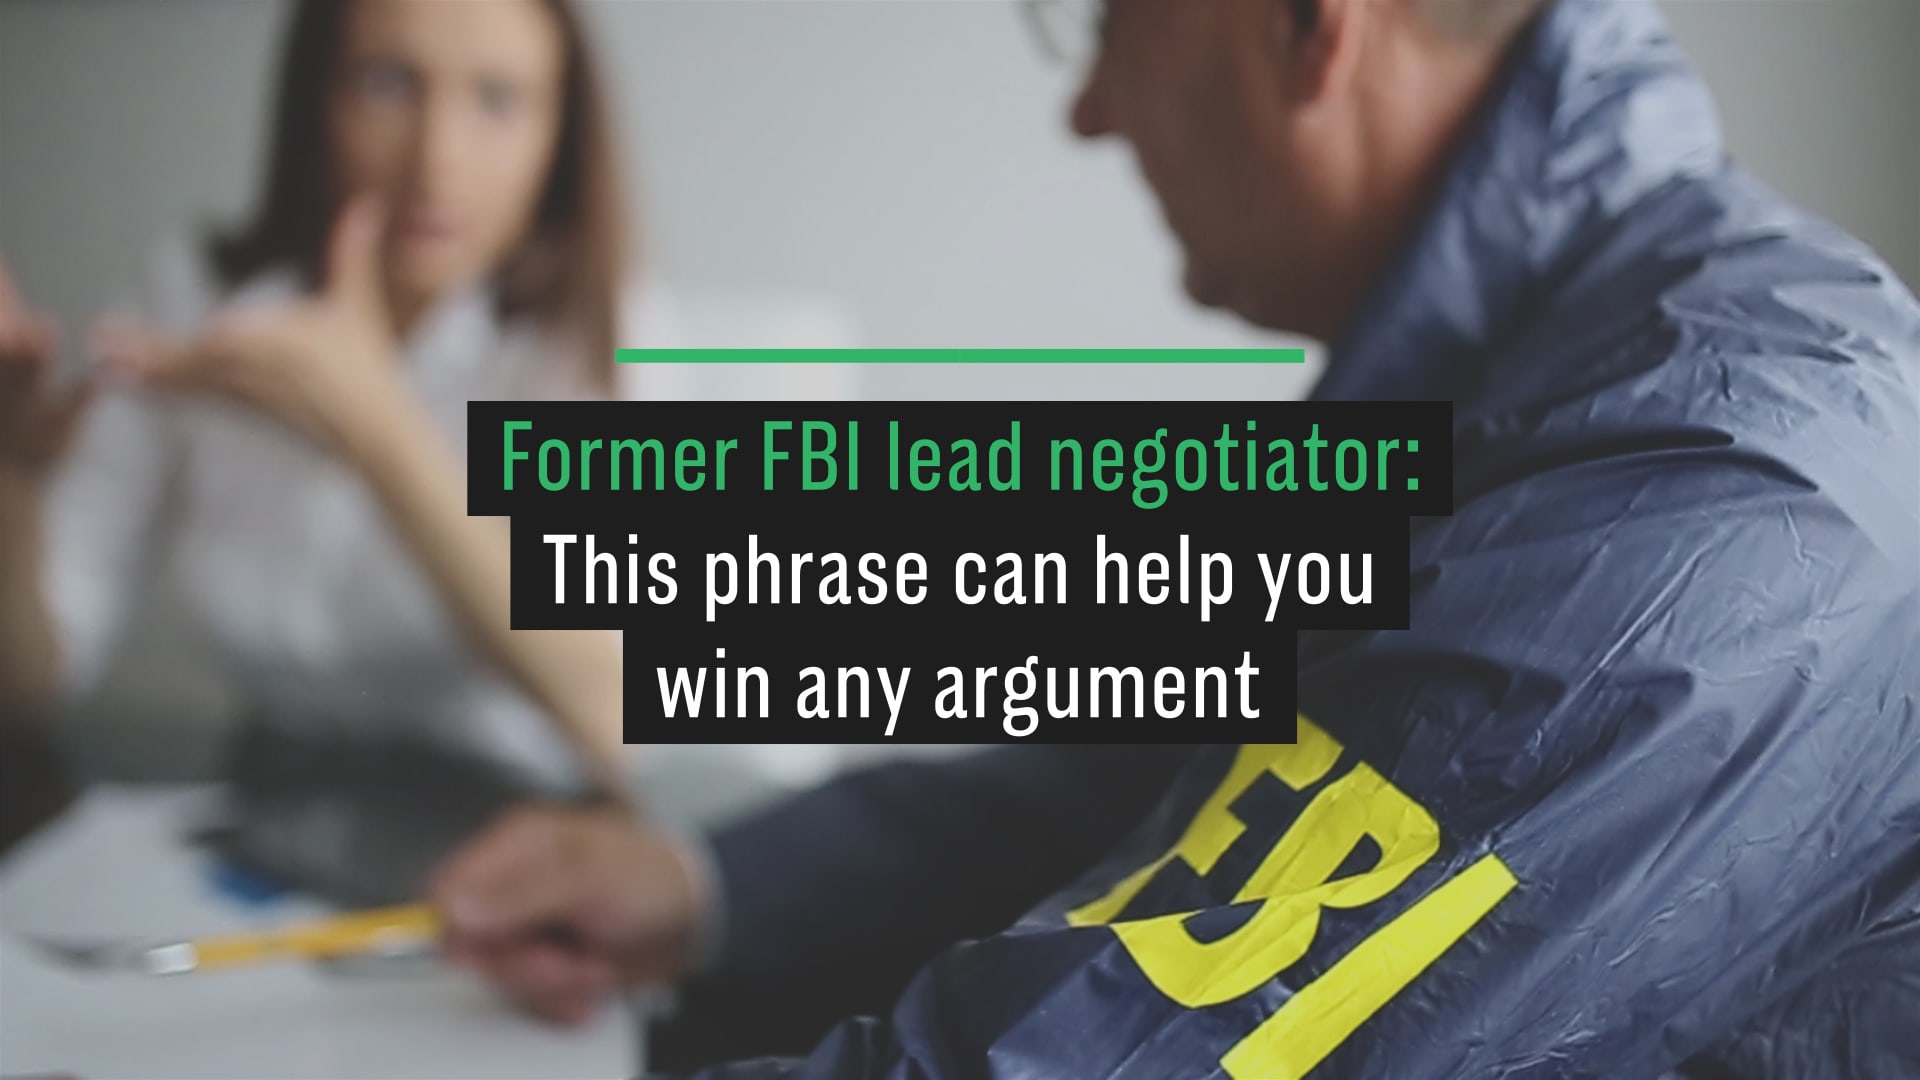 Ex-FBI negotiator: This one phrase can help you win any argument